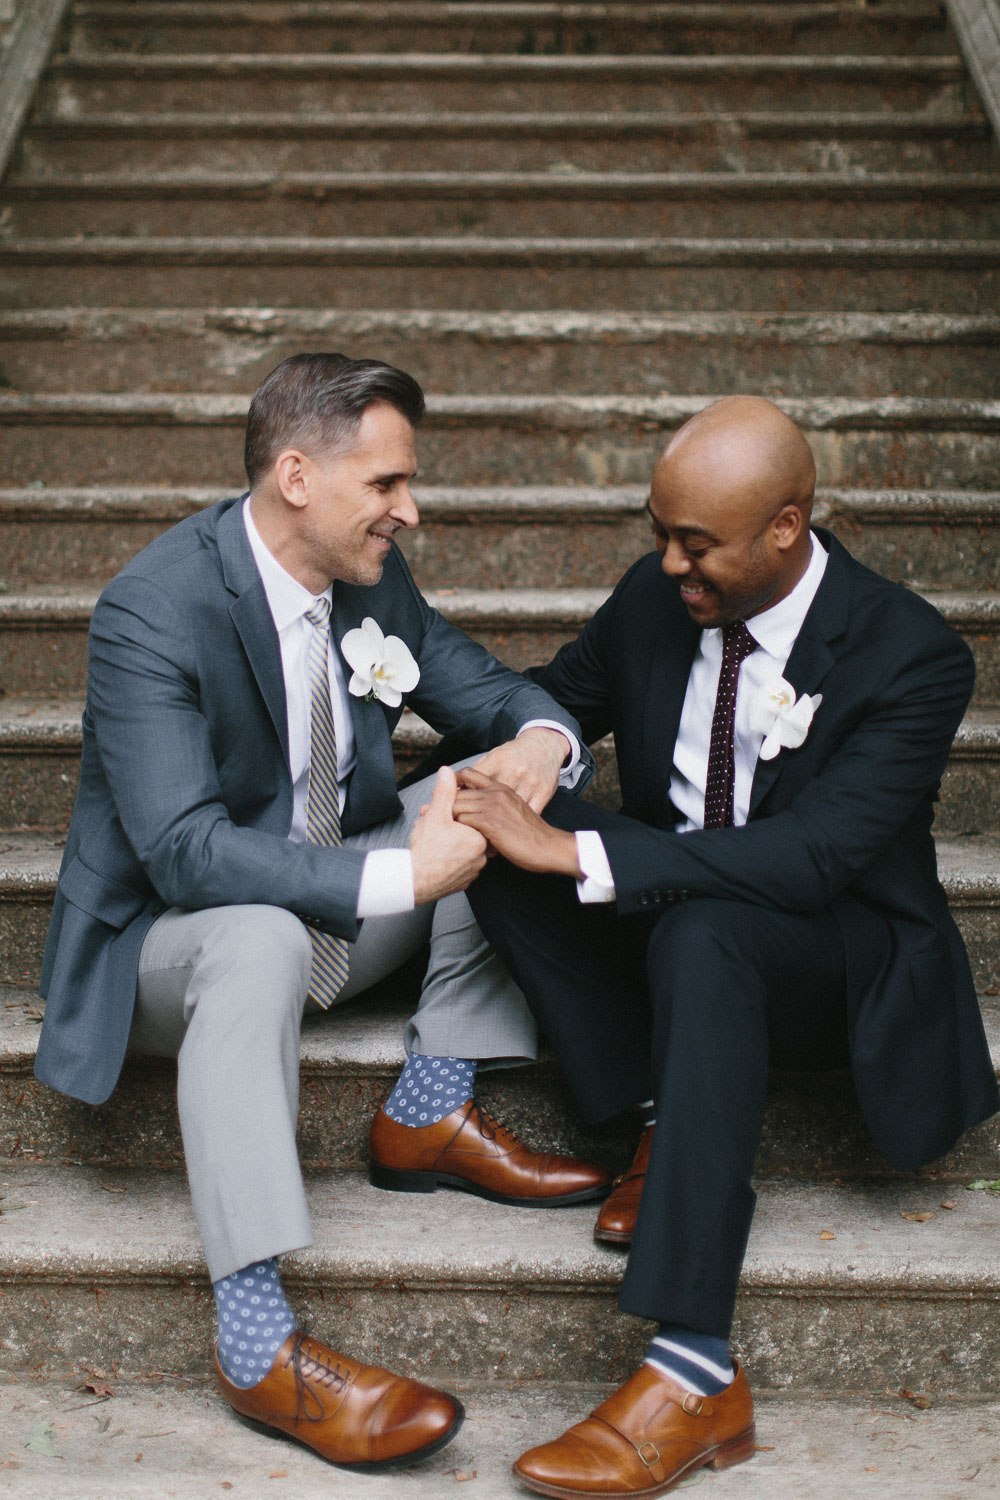 decatur_atlanta_courthouse_elopement_dekalb_gay_weddings-1036.jpg